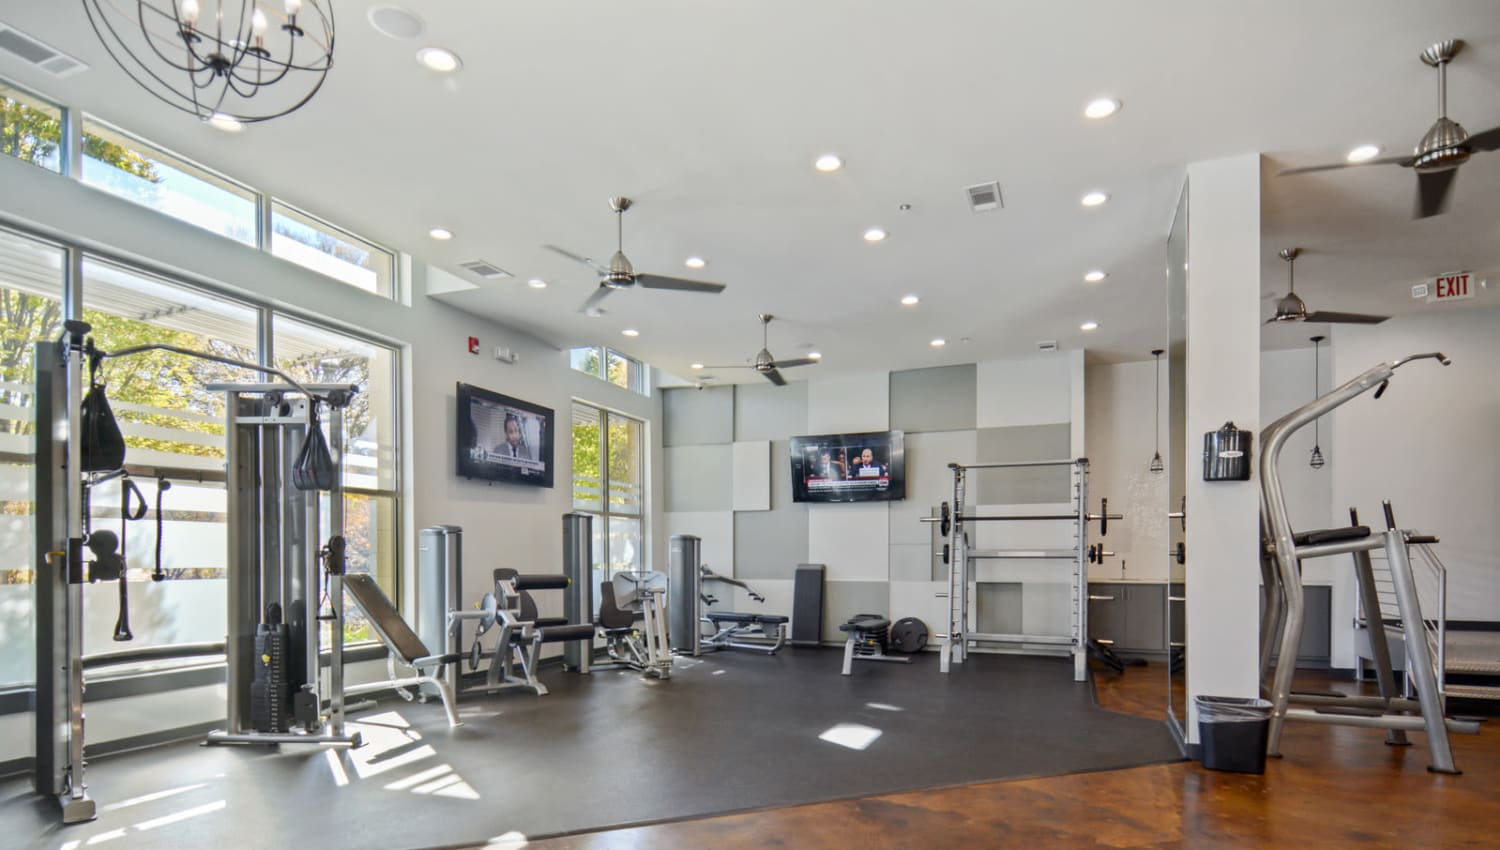 Well-equipped onsite fitness center at Ellington Midtown in Atlanta, Georgia